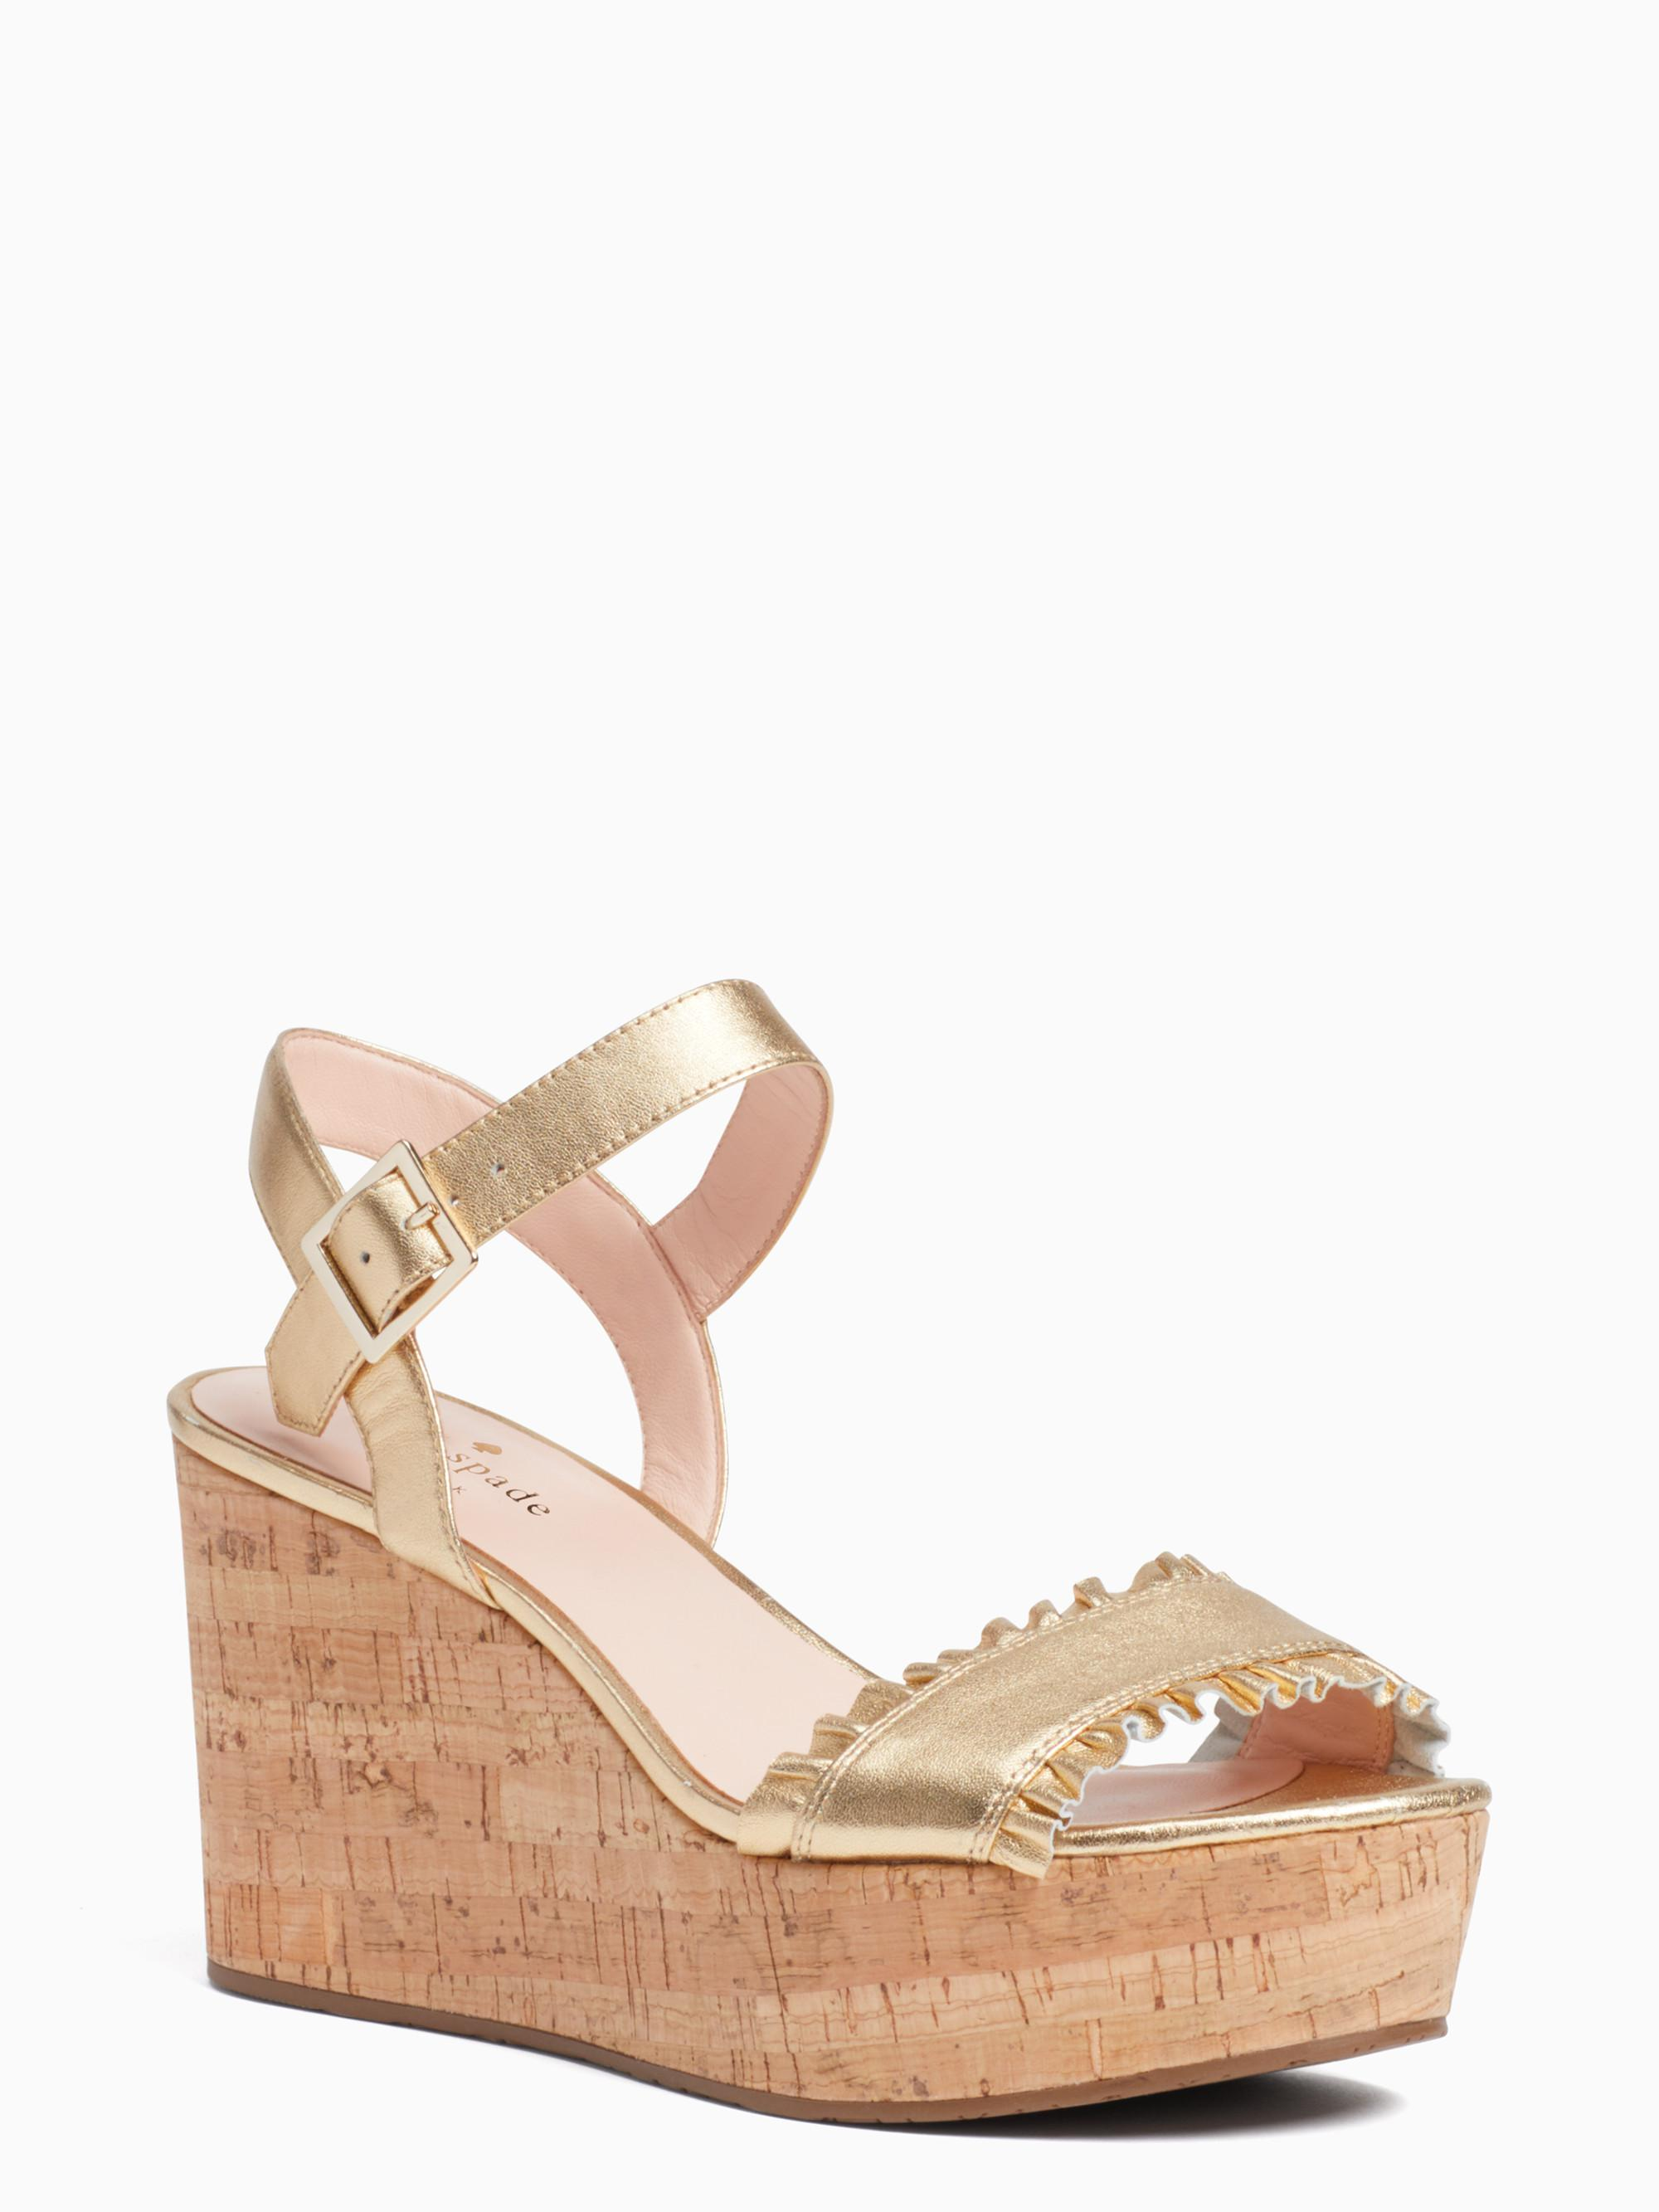 kate spade new york Tomas Metallic Leather Ruffle Detail Wedge Sandals